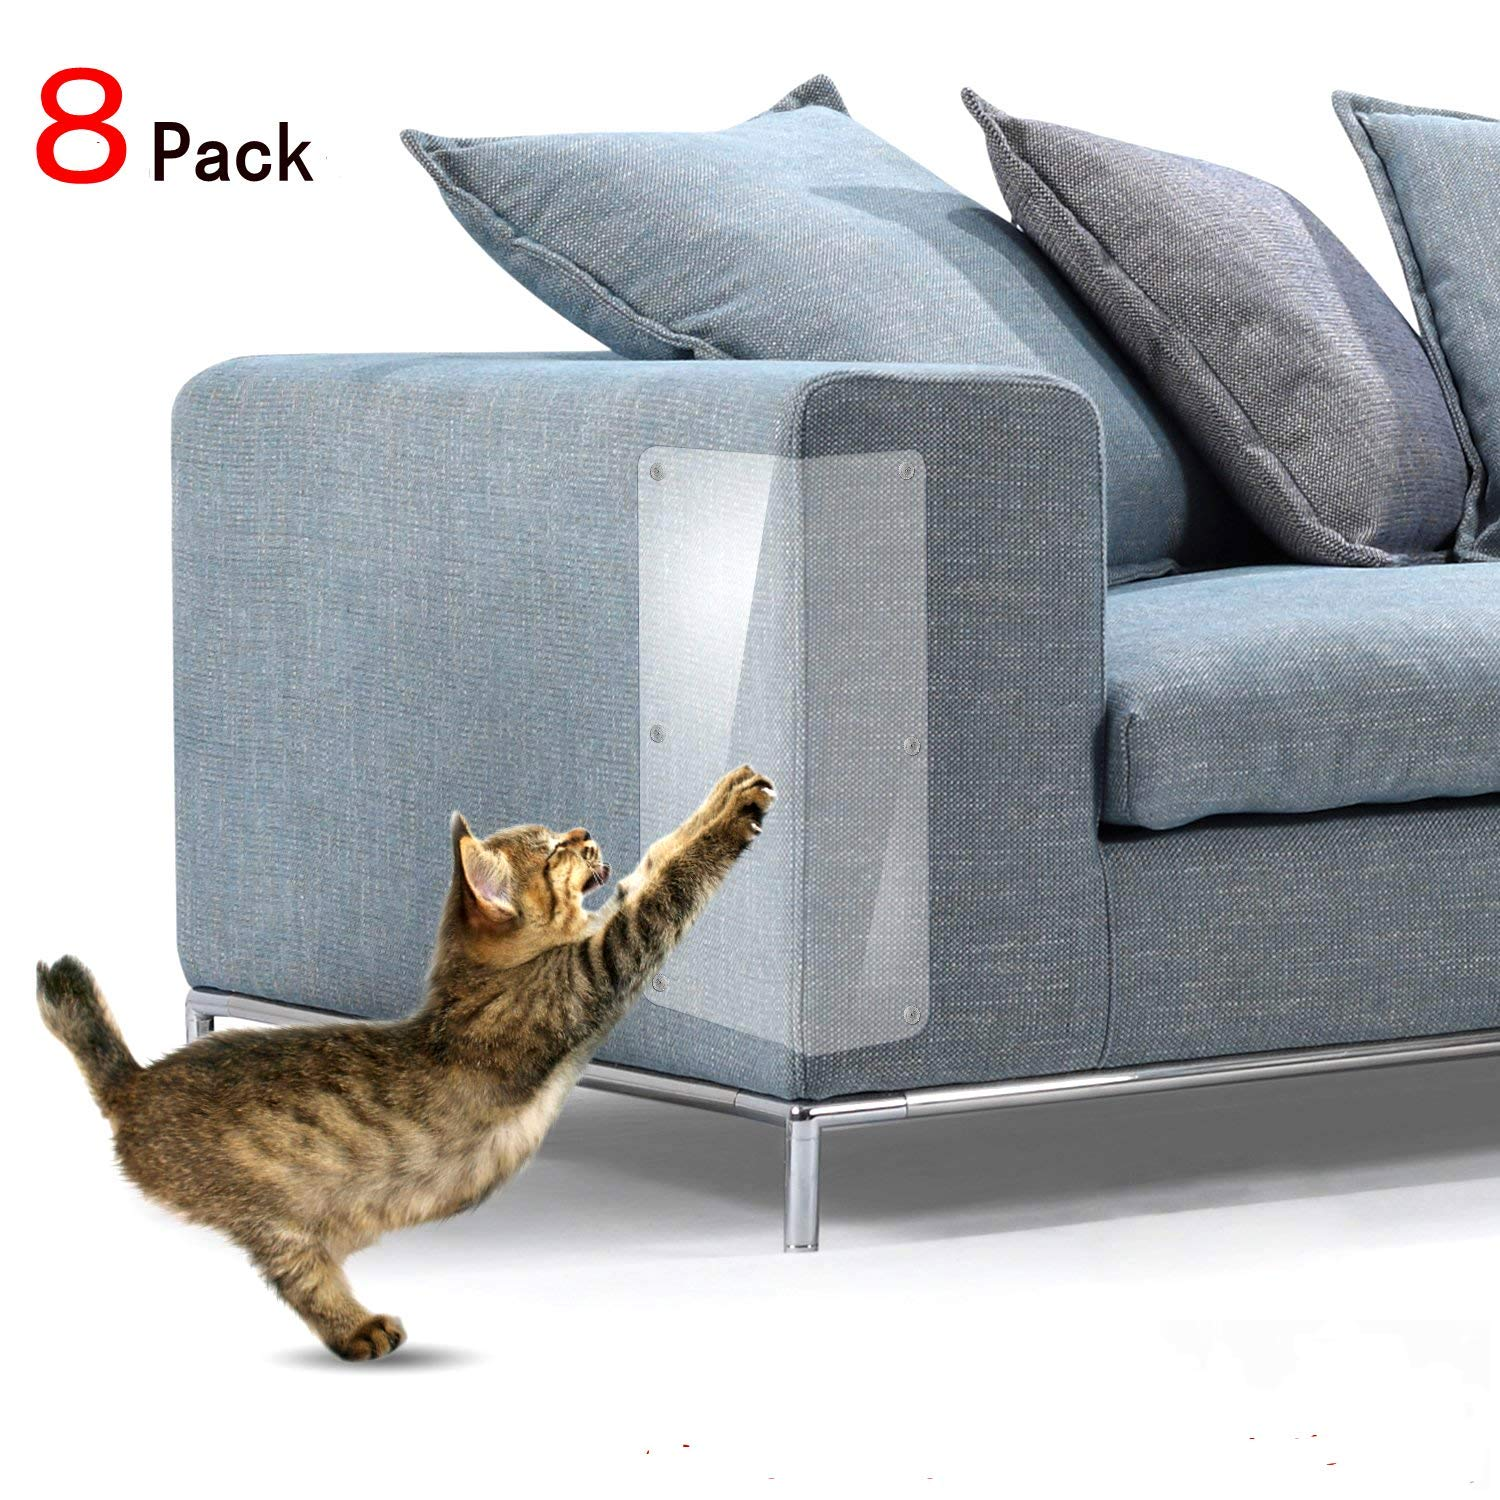 8 Pcs Cat Furniture Protectors,4 Pack X-Large (20''L x 12''W) + 4 Pack Large (20''L x 8''W) Cat Scratching Pad, Pet Scratch Protector for Sofa,Upholstery, Wall, Mattress by YONGJOY